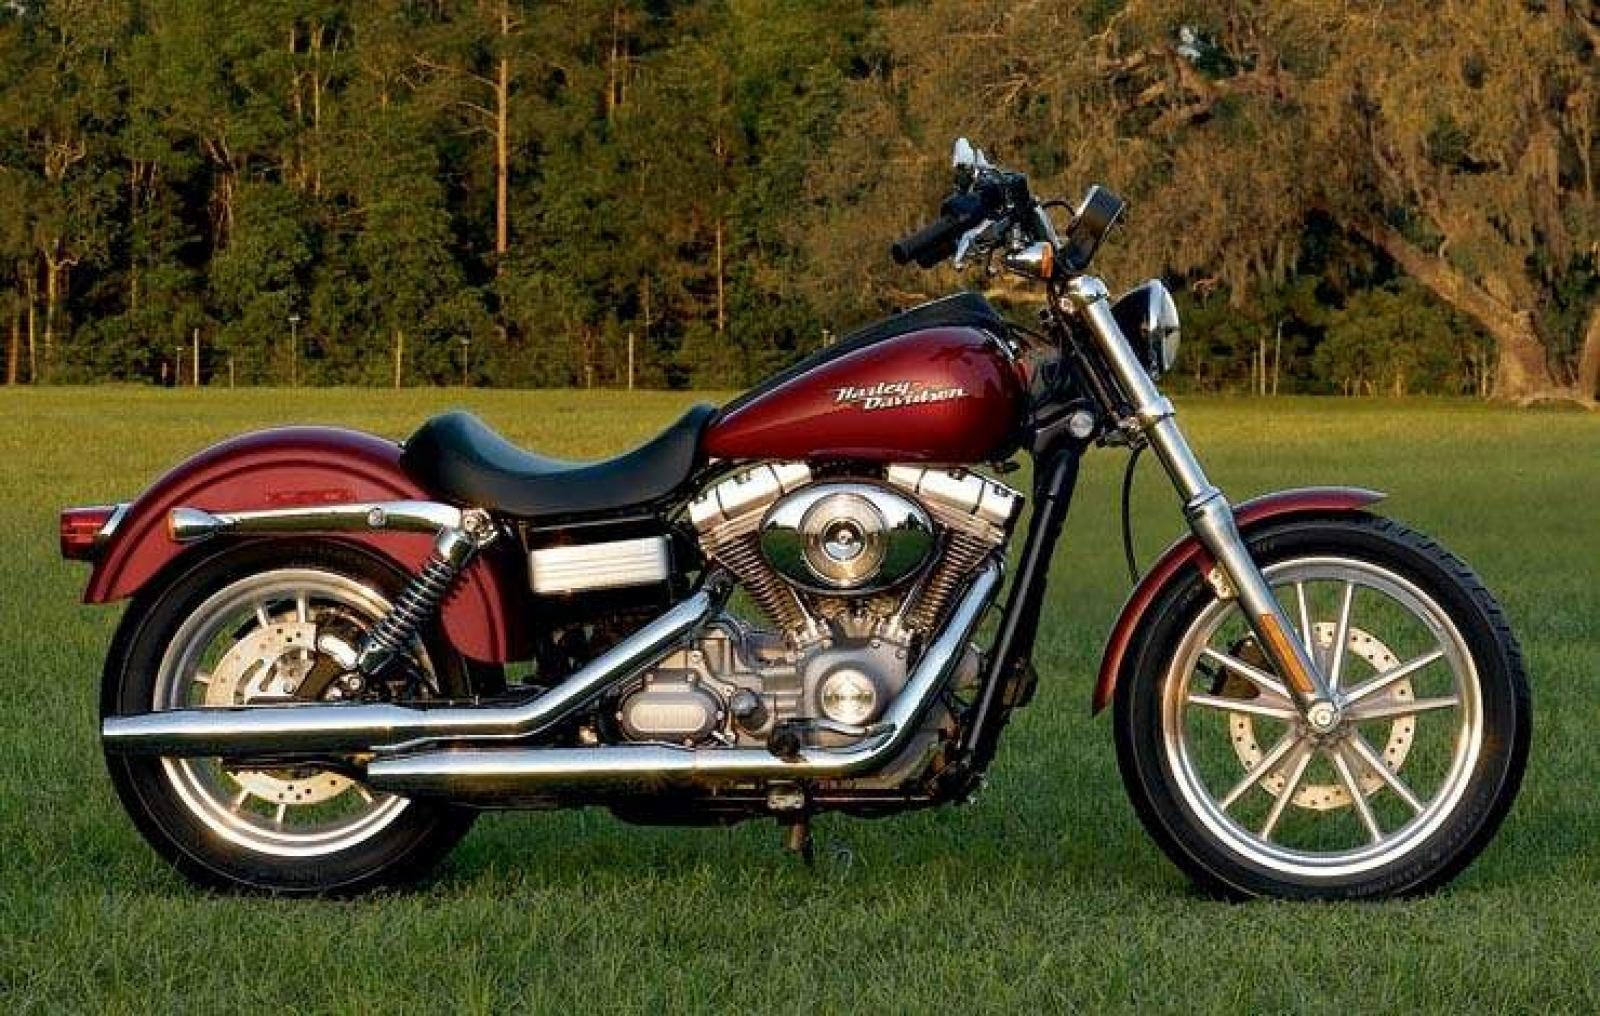 2002 harley davidson fxd dyna super glide moto zombdrive com. Black Bedroom Furniture Sets. Home Design Ideas